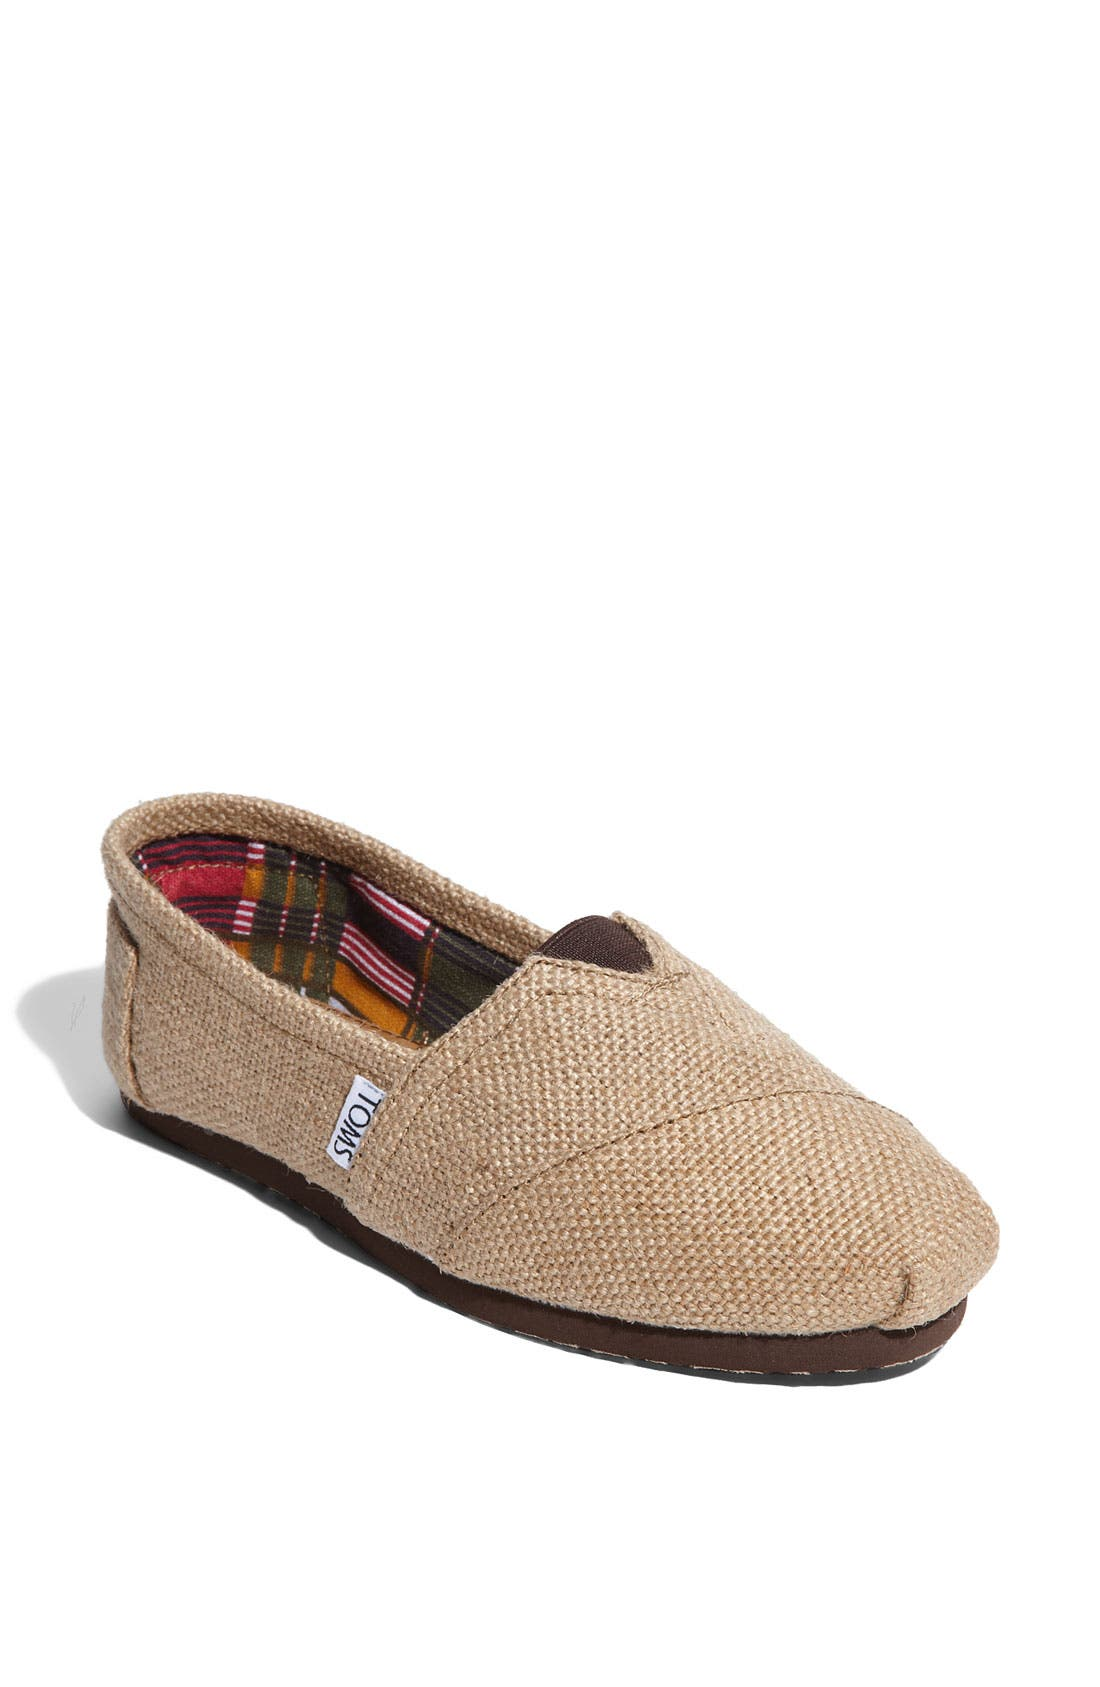 Main Image - TOMS Burlap Slip-On (Women)